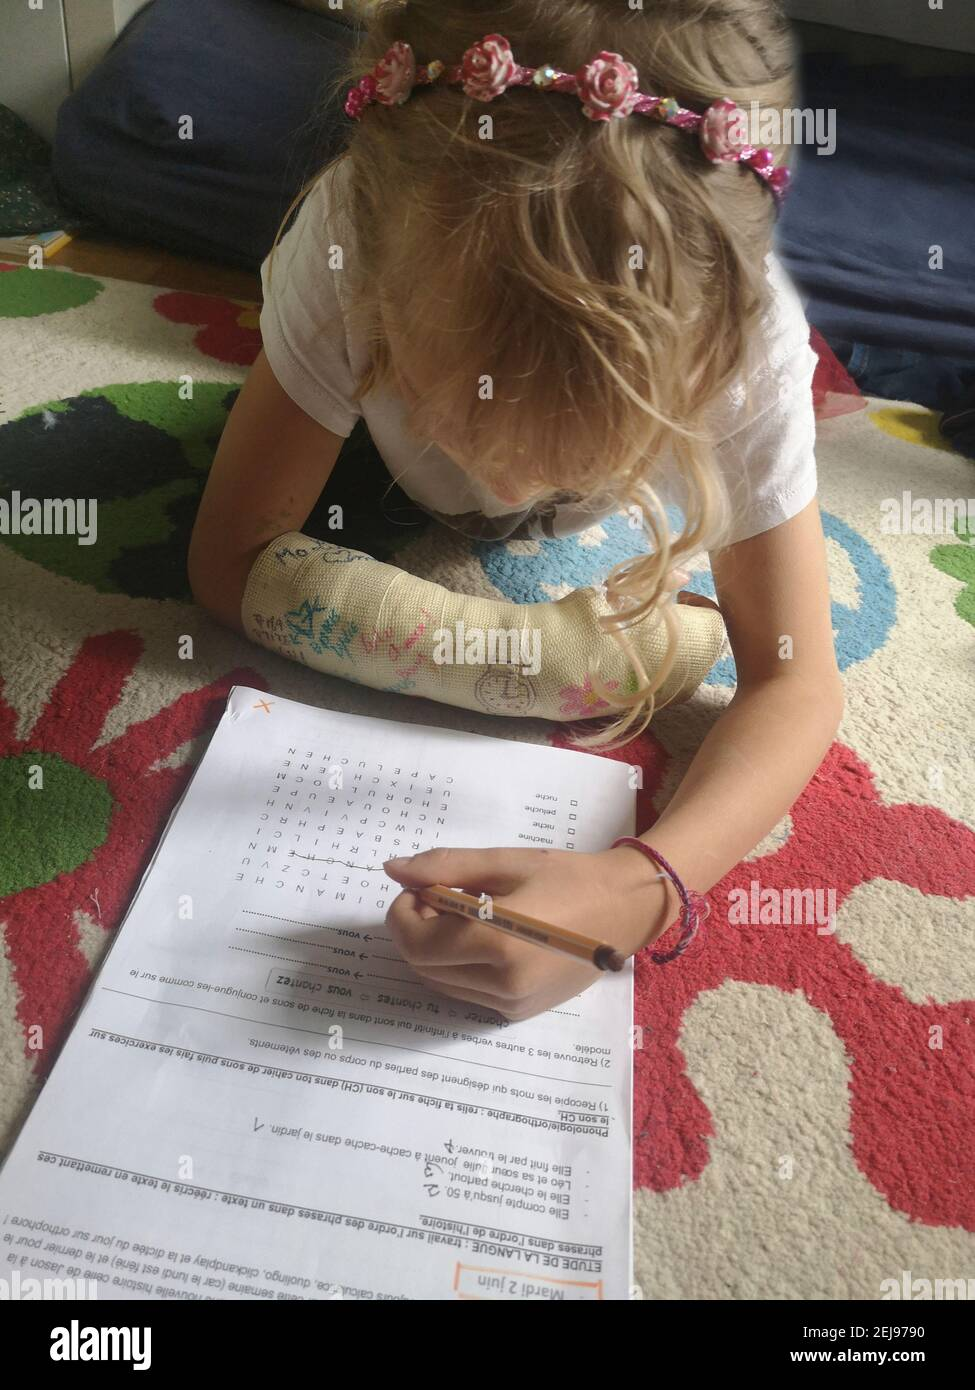 7-9 year old European girl with a plastered broken arm doing her homework with her left hand, France. Stock Photo